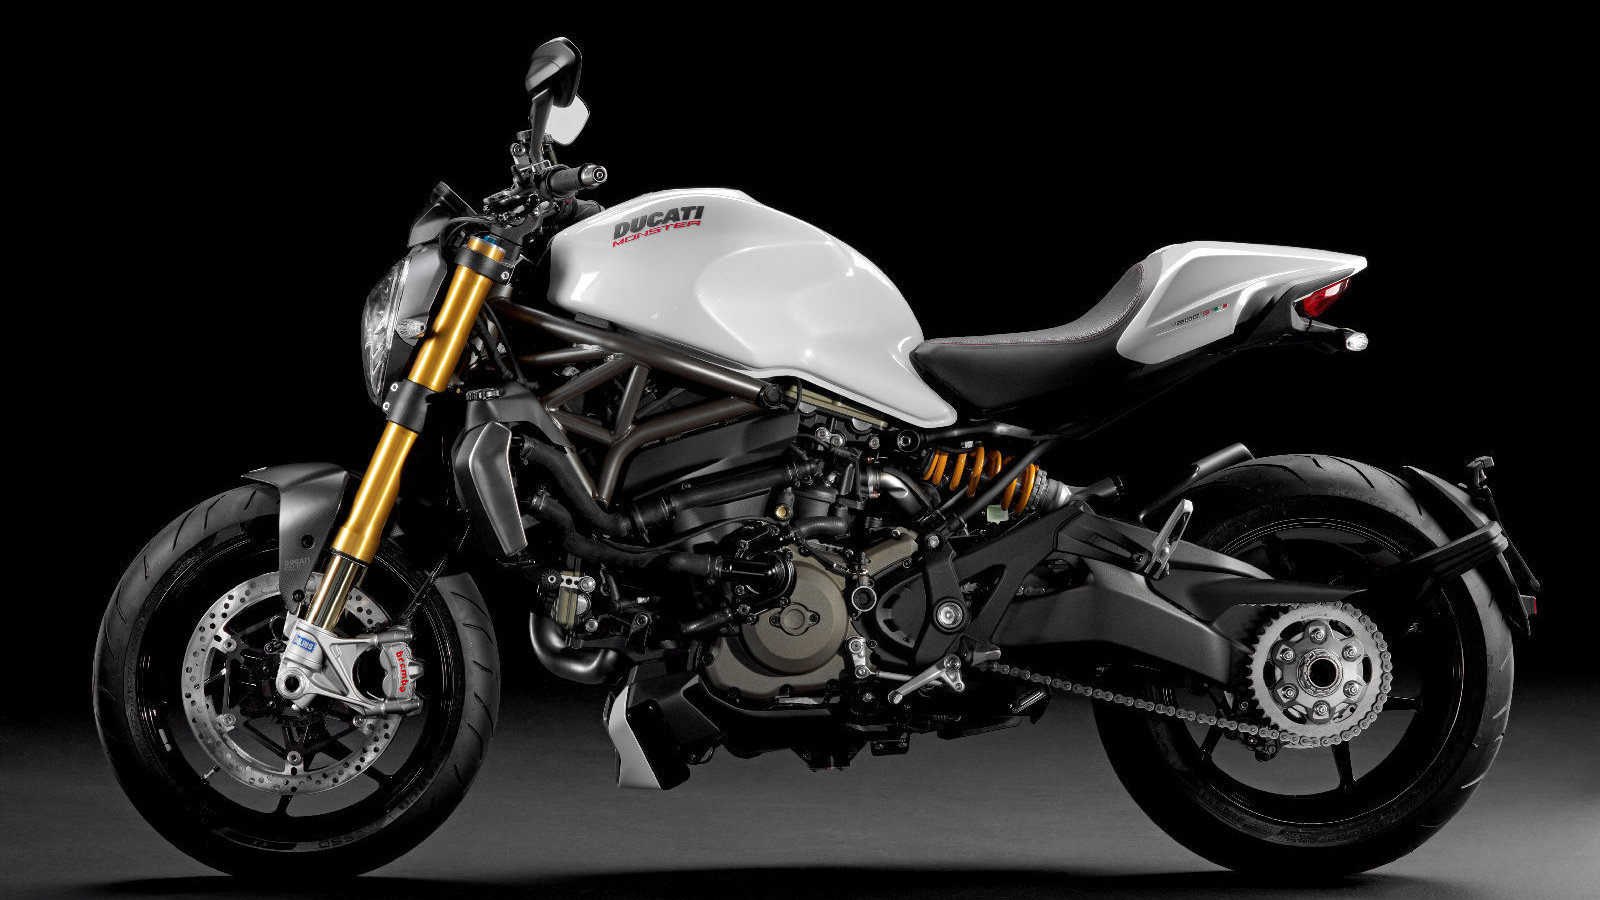 2015 2017 ducati monster 1200 1200 s 1200 r picture 674915 motorcycle review top speed. Black Bedroom Furniture Sets. Home Design Ideas